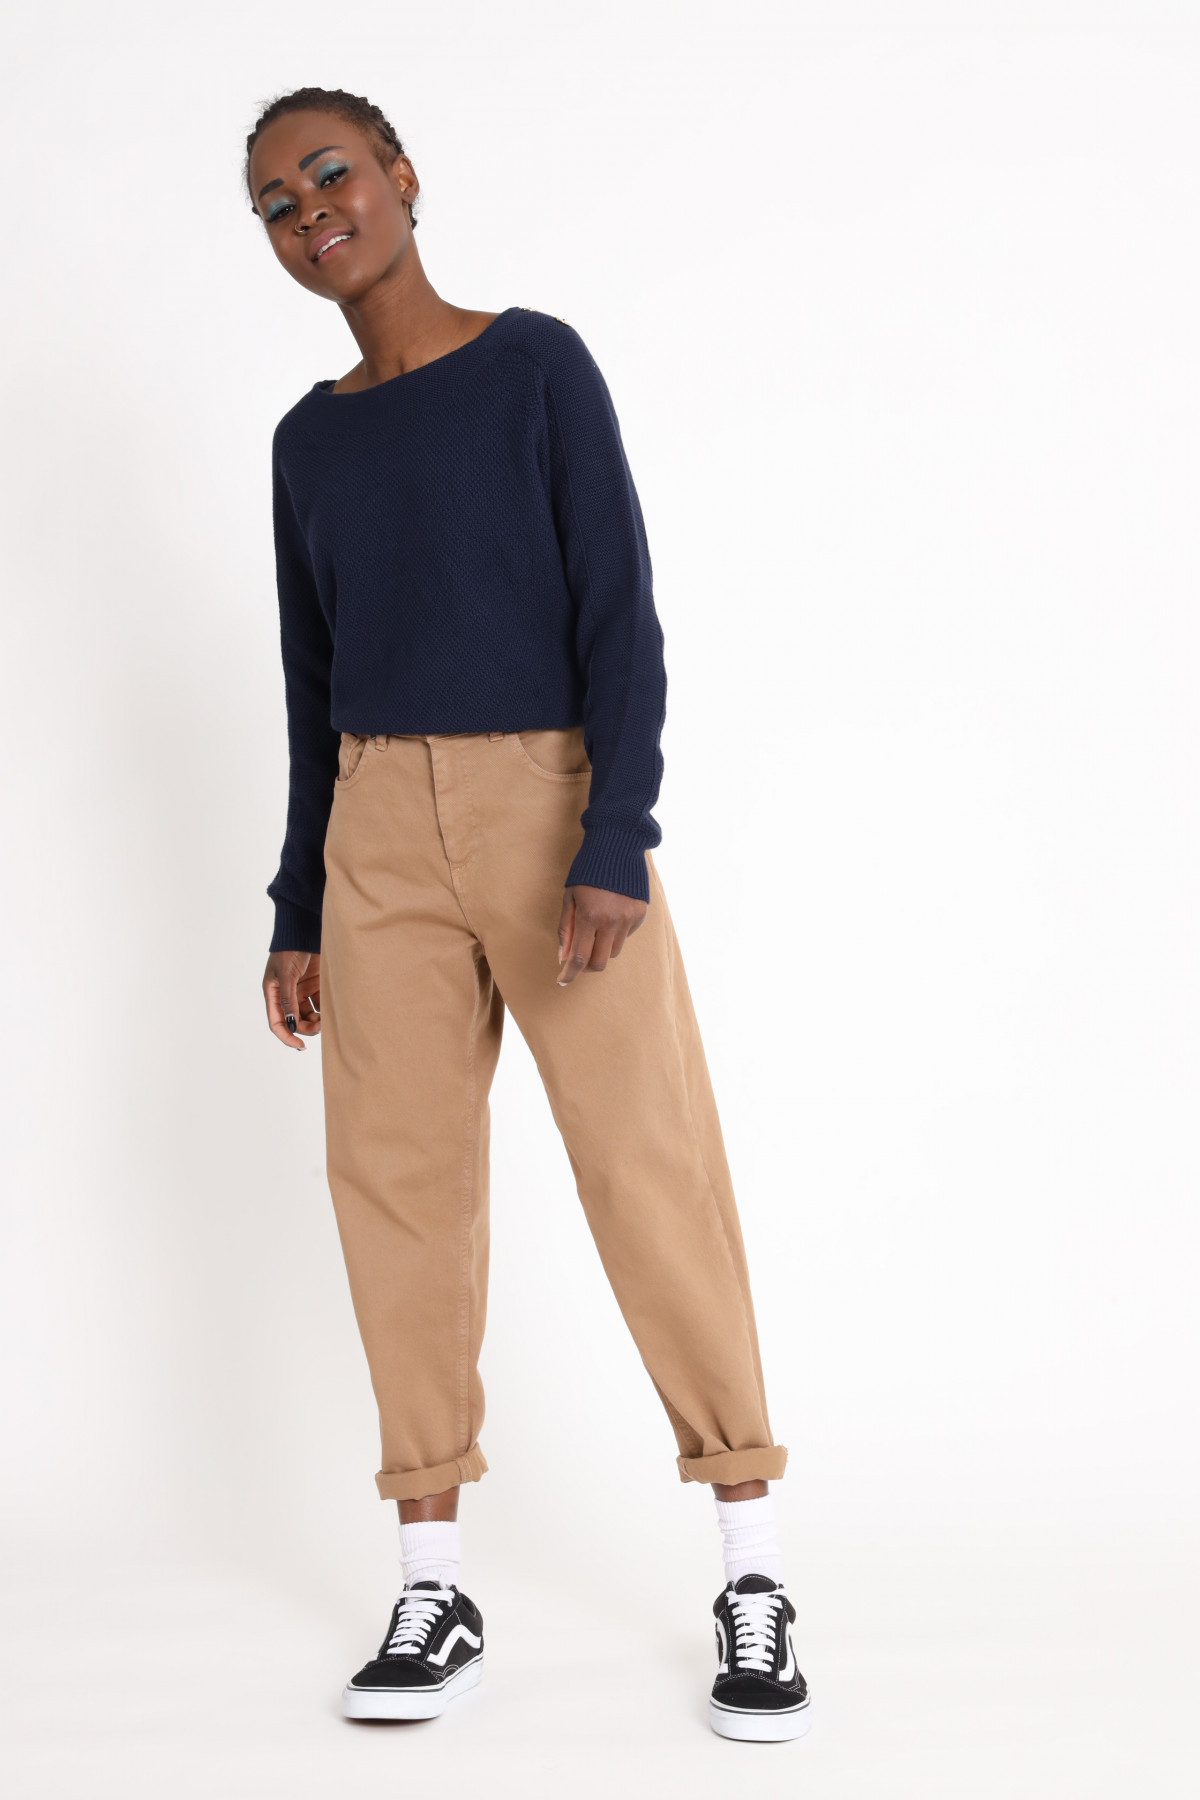 Boat Neck Sweater with Buttons On Shoulders